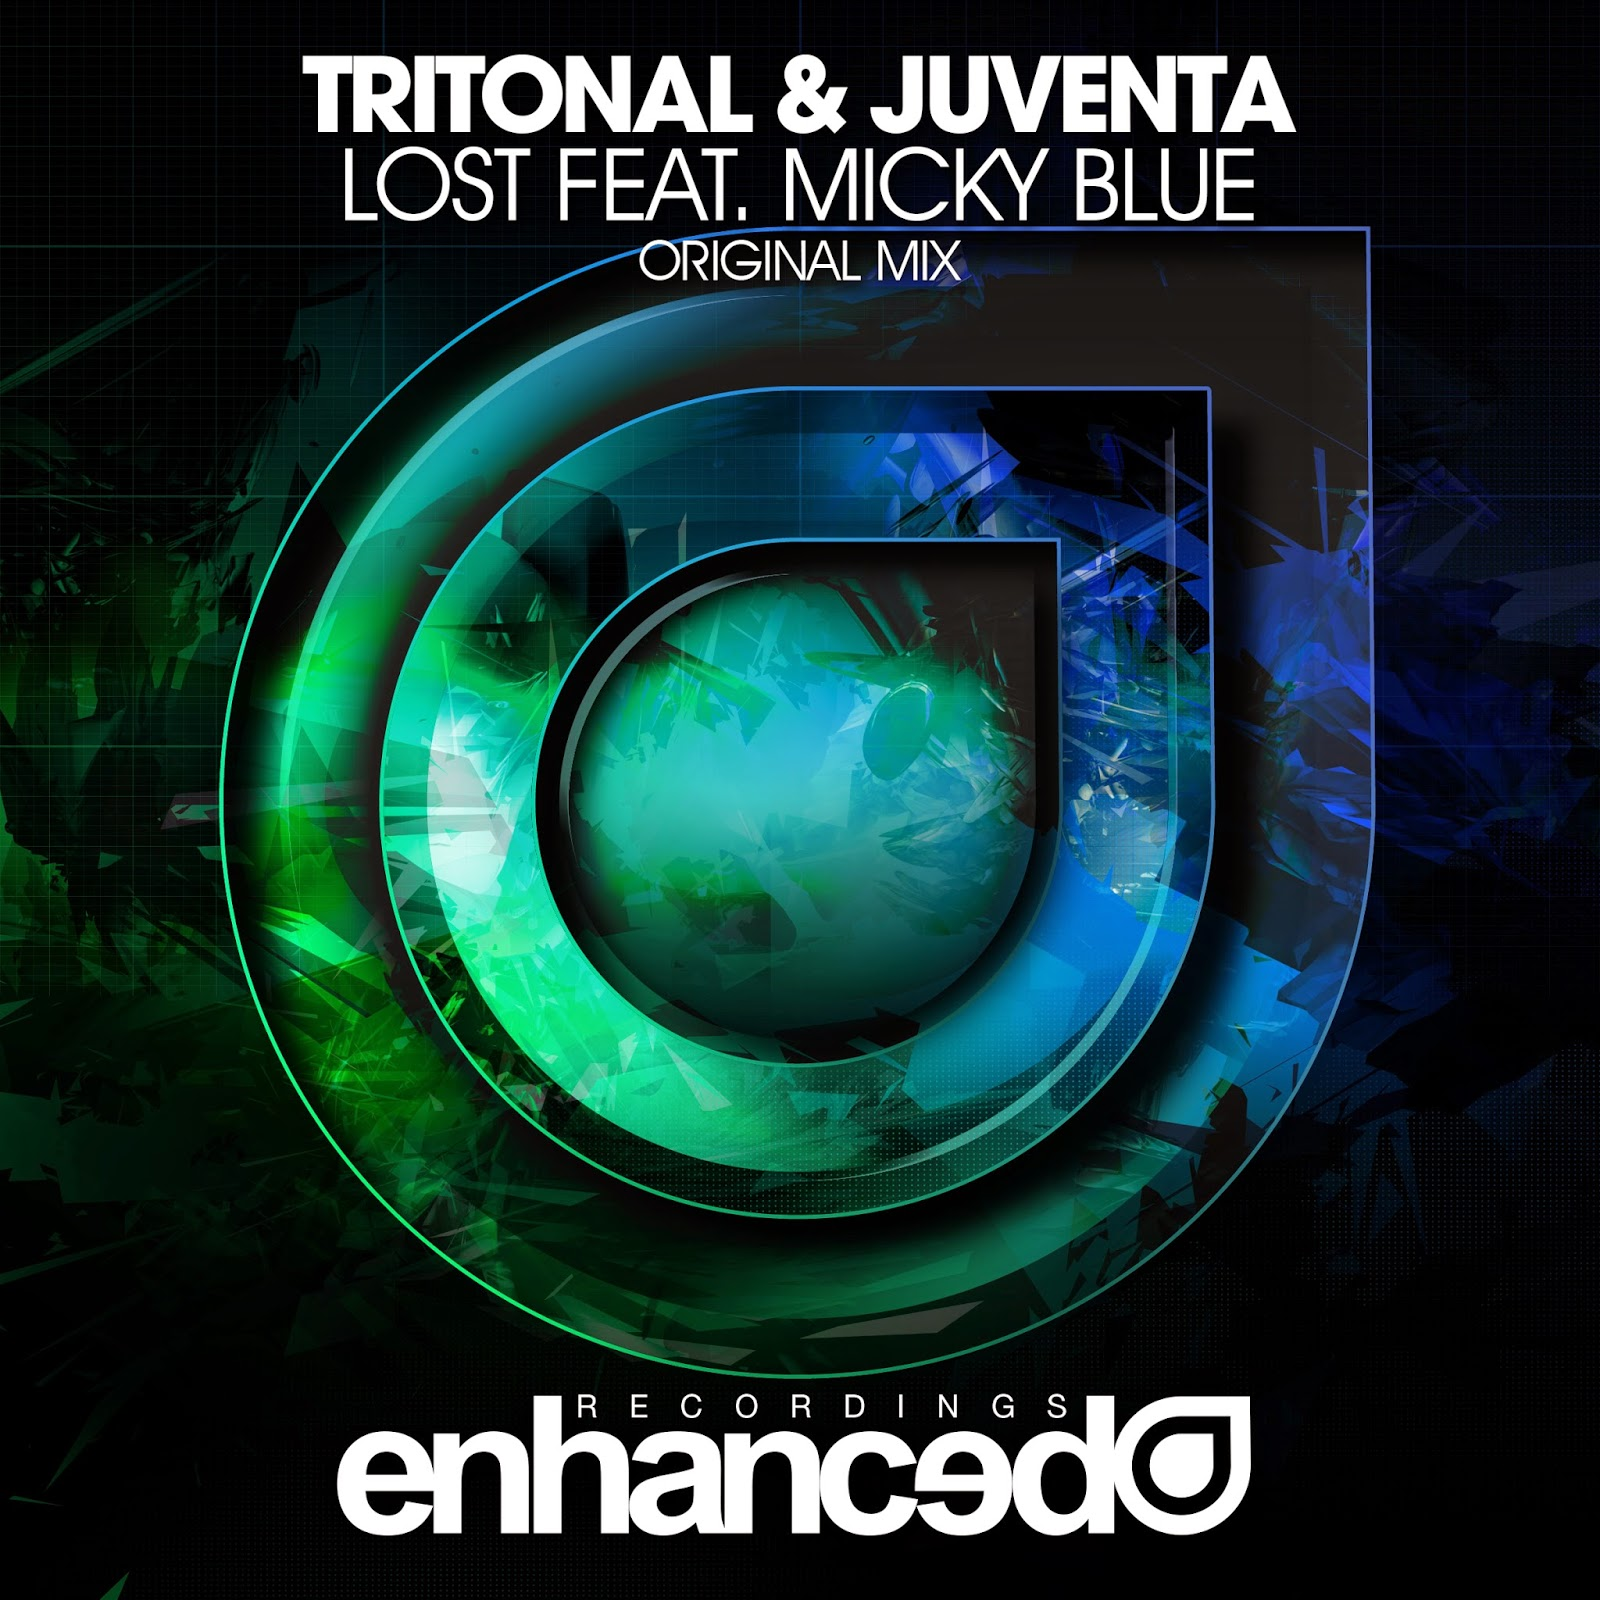 TRITONAL & JUVENTA 'LOST' FEAT. MICKY BLUE free download